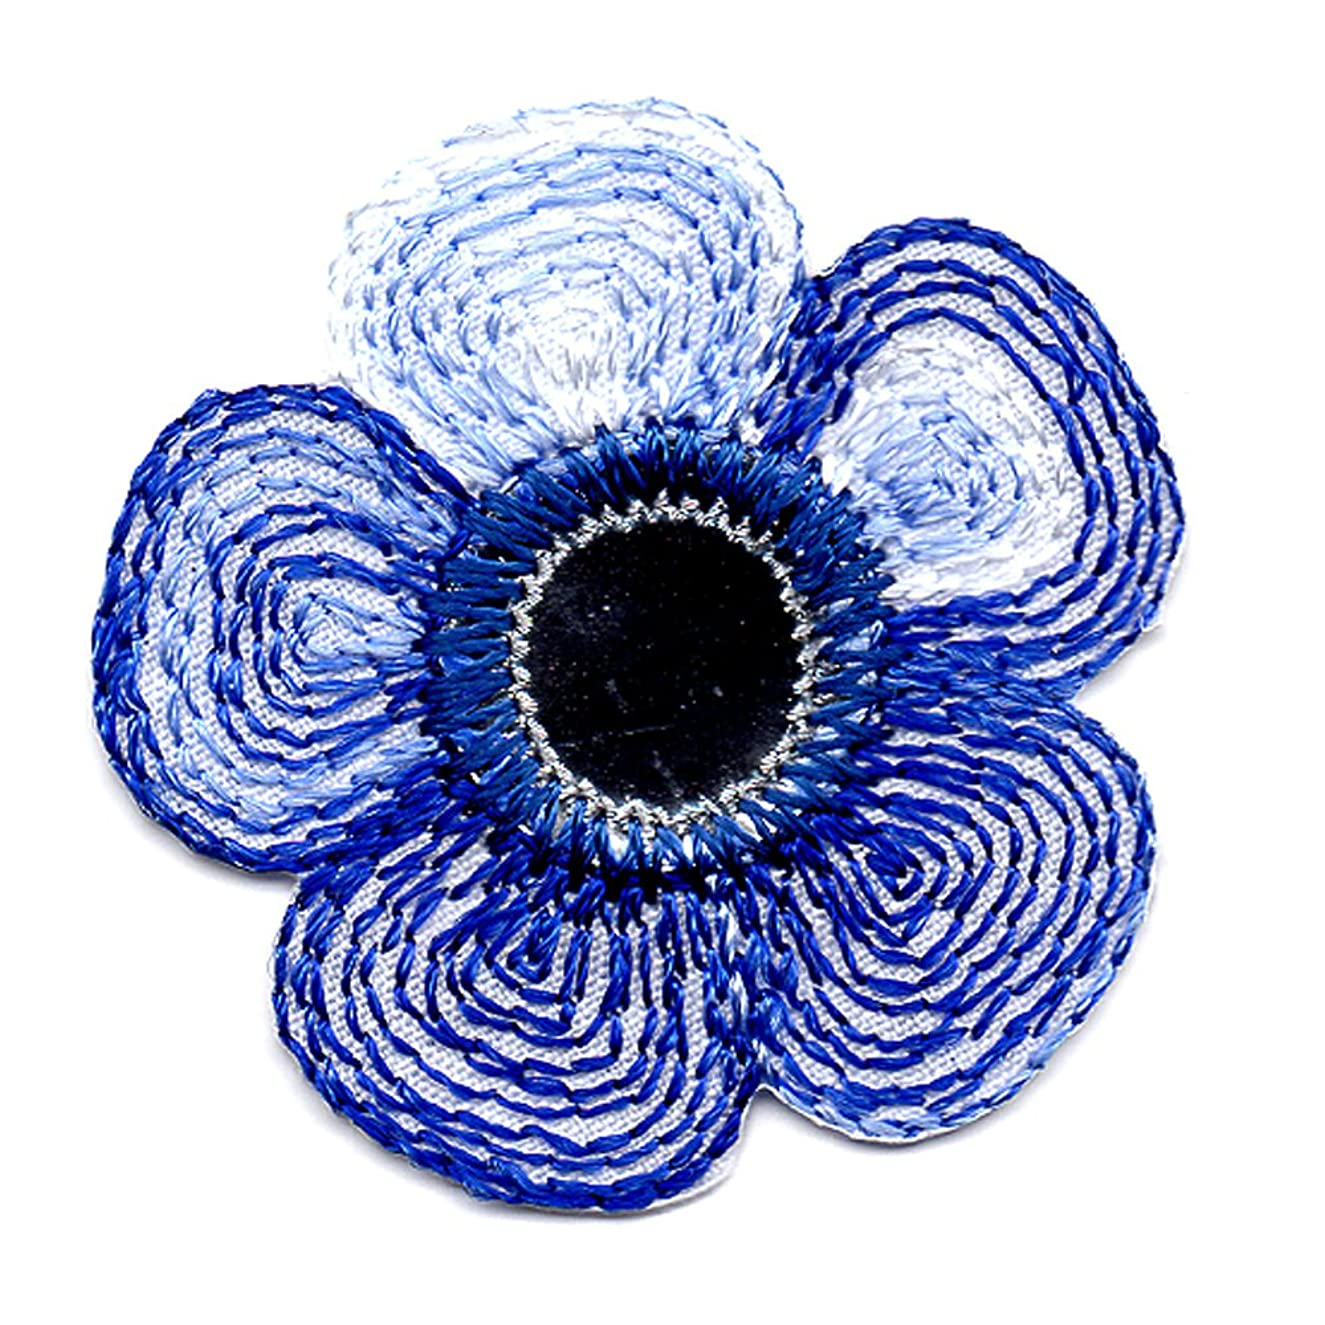 Venus Ribbon Iron-On Daisy with Mirror Applique, 4-Piece, 1 1/4-Inch by 1 1/4-Inch, Navy Multi with Silver